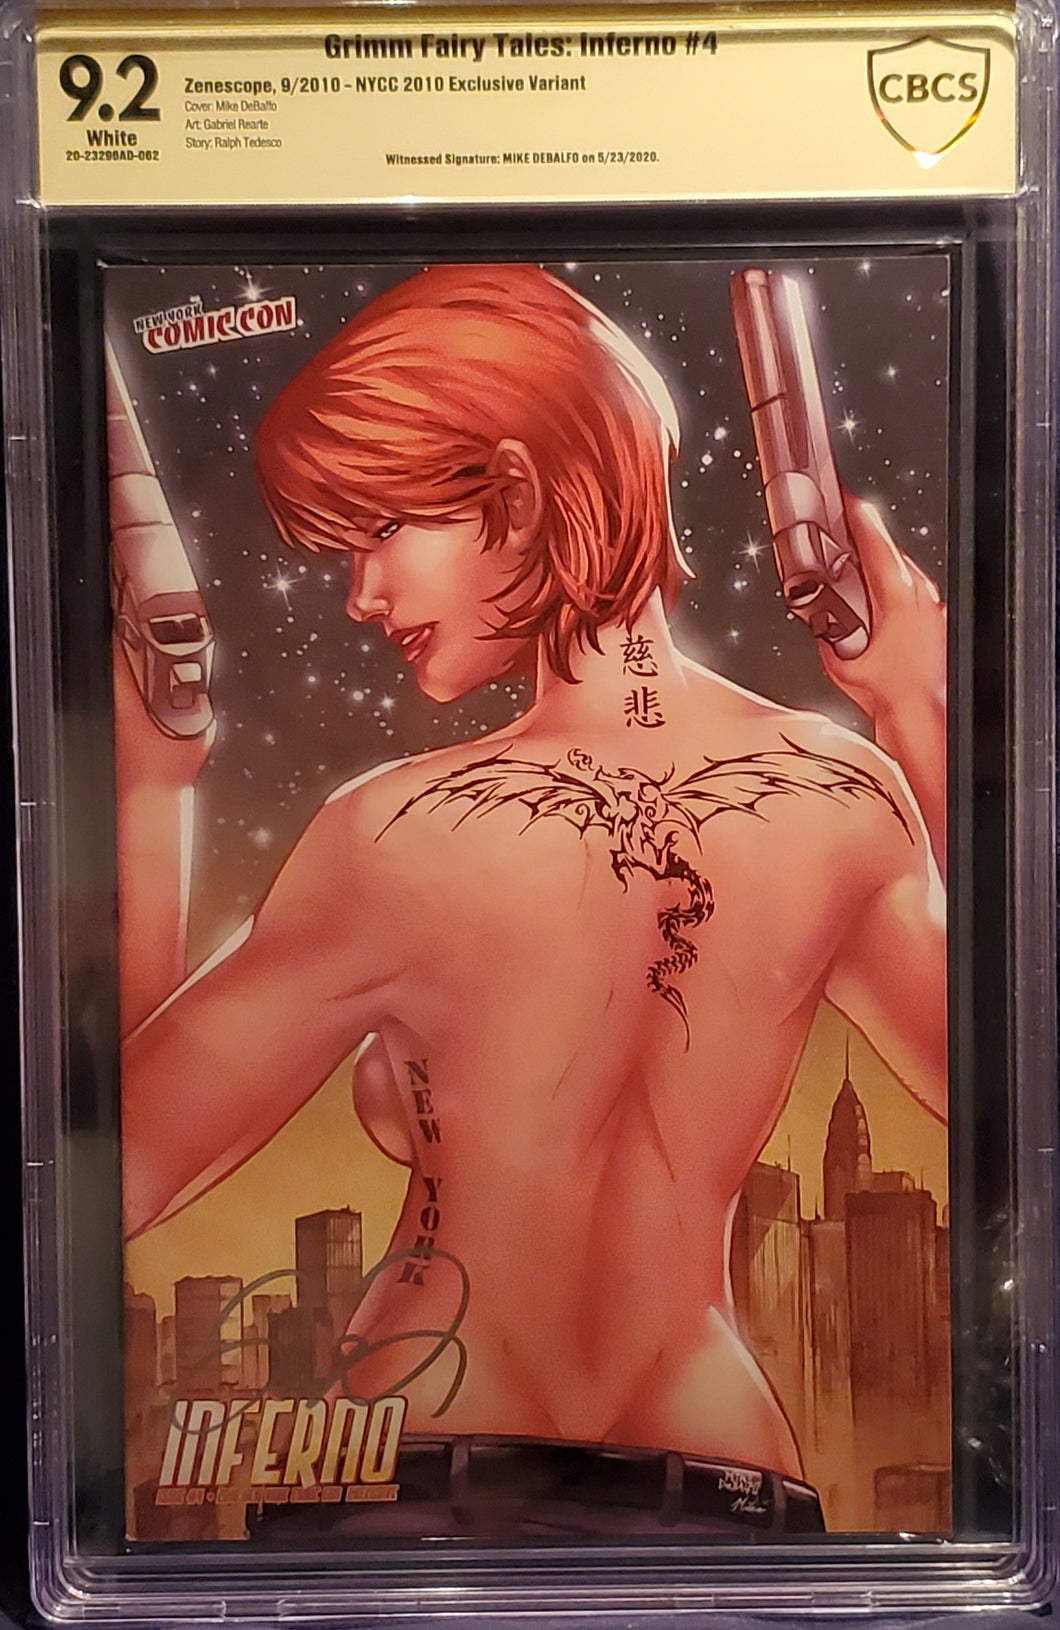 HOT!! GRIMM FAIRY TALES: INFERNO #4 LIMITED TO 500 NYCC 2010 EXCLUSIVE  SIGNED BY MIKE DEBALFO 9.2 CBCS